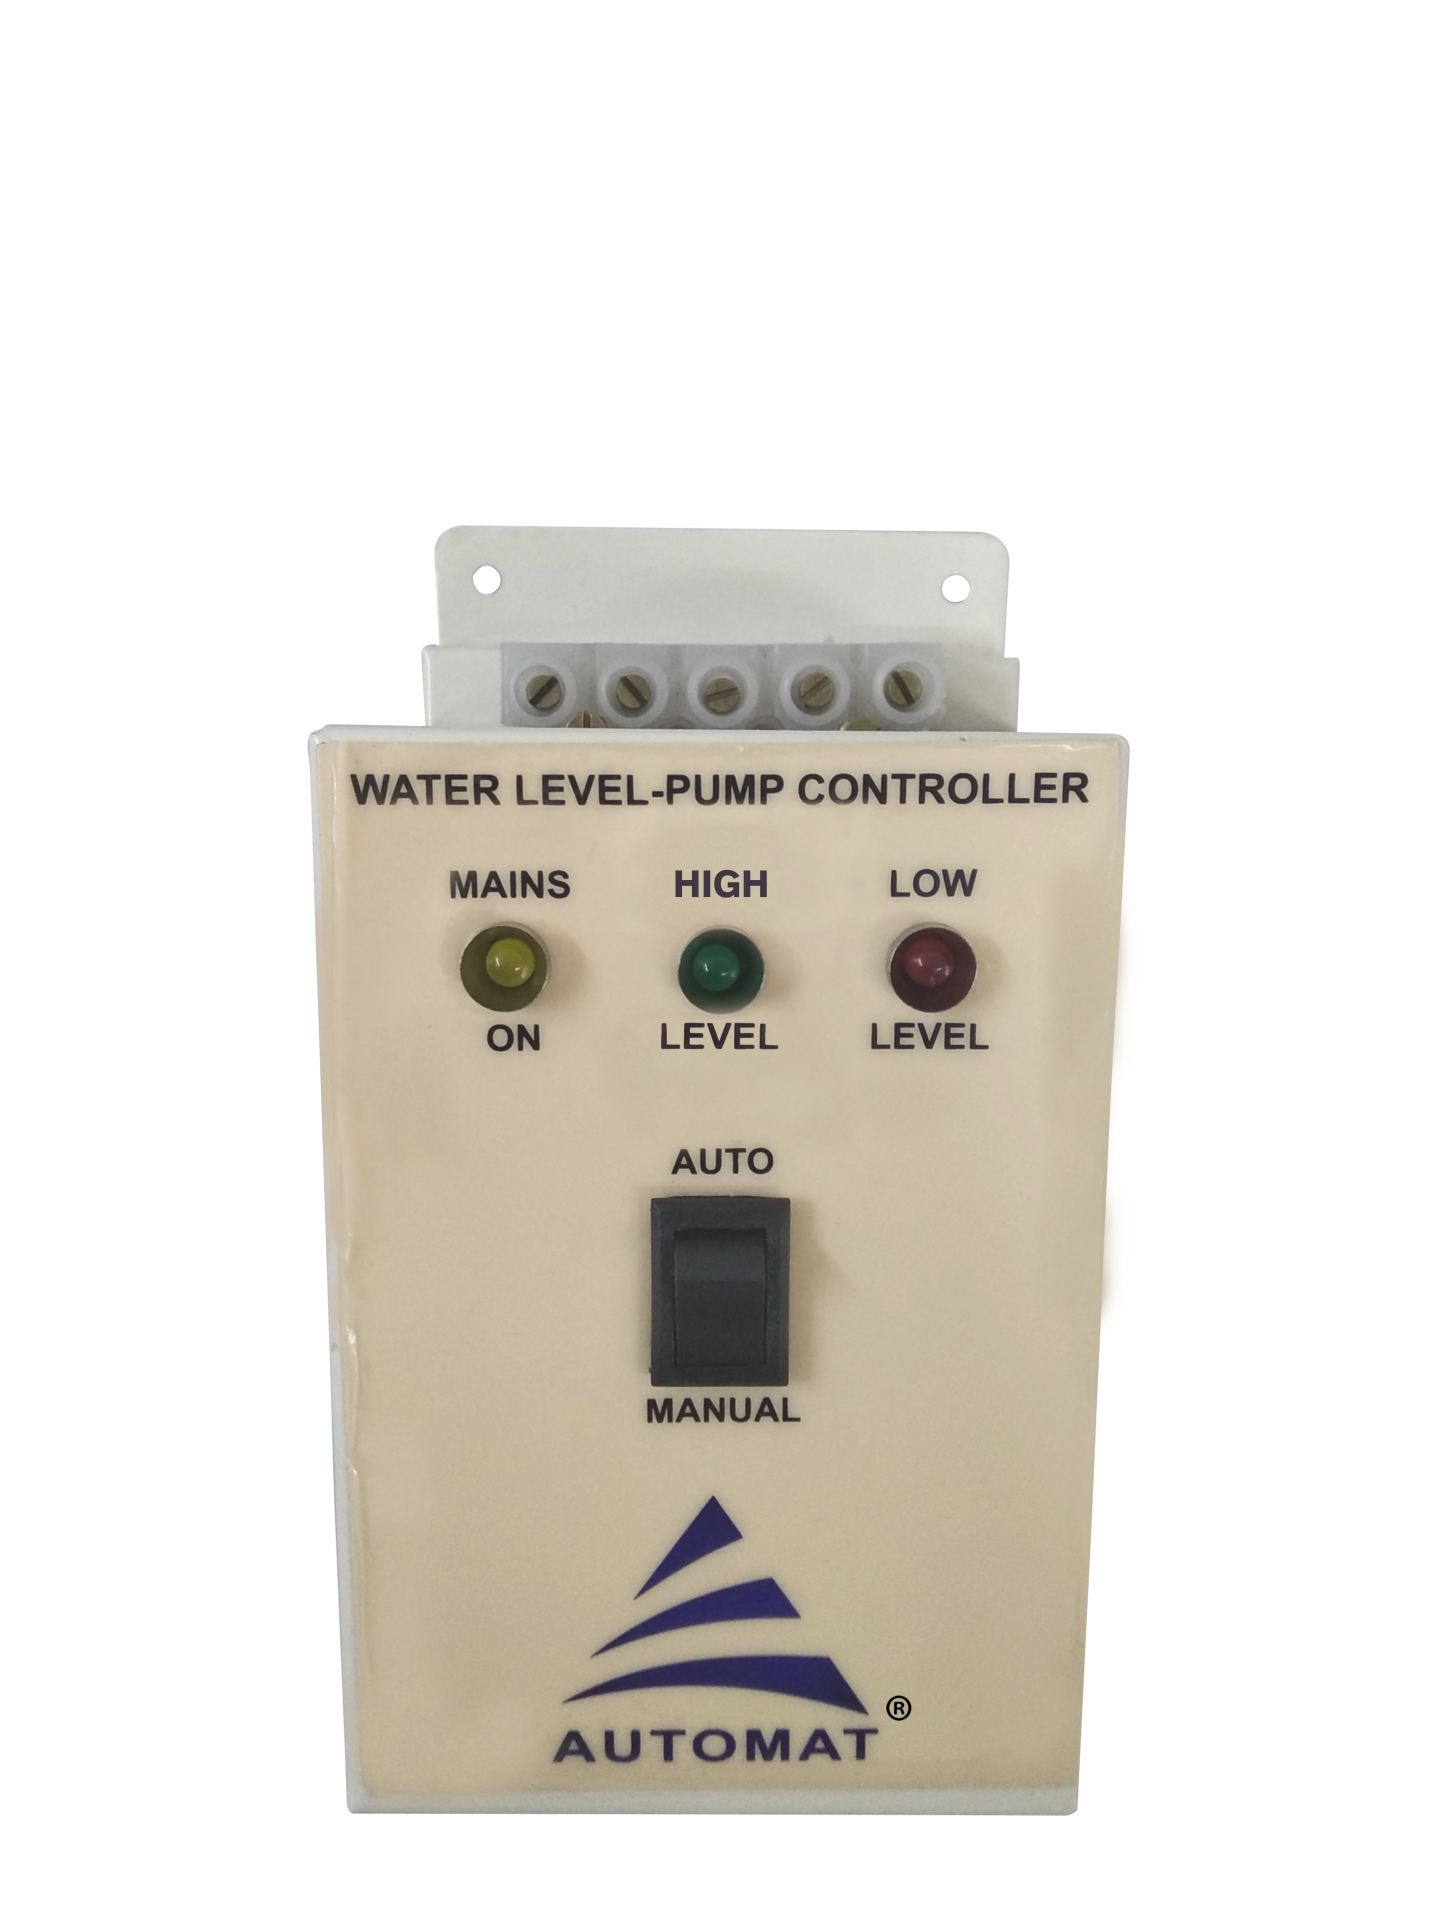 Water Level Land & Turf Irrigation AutomatIrrigation